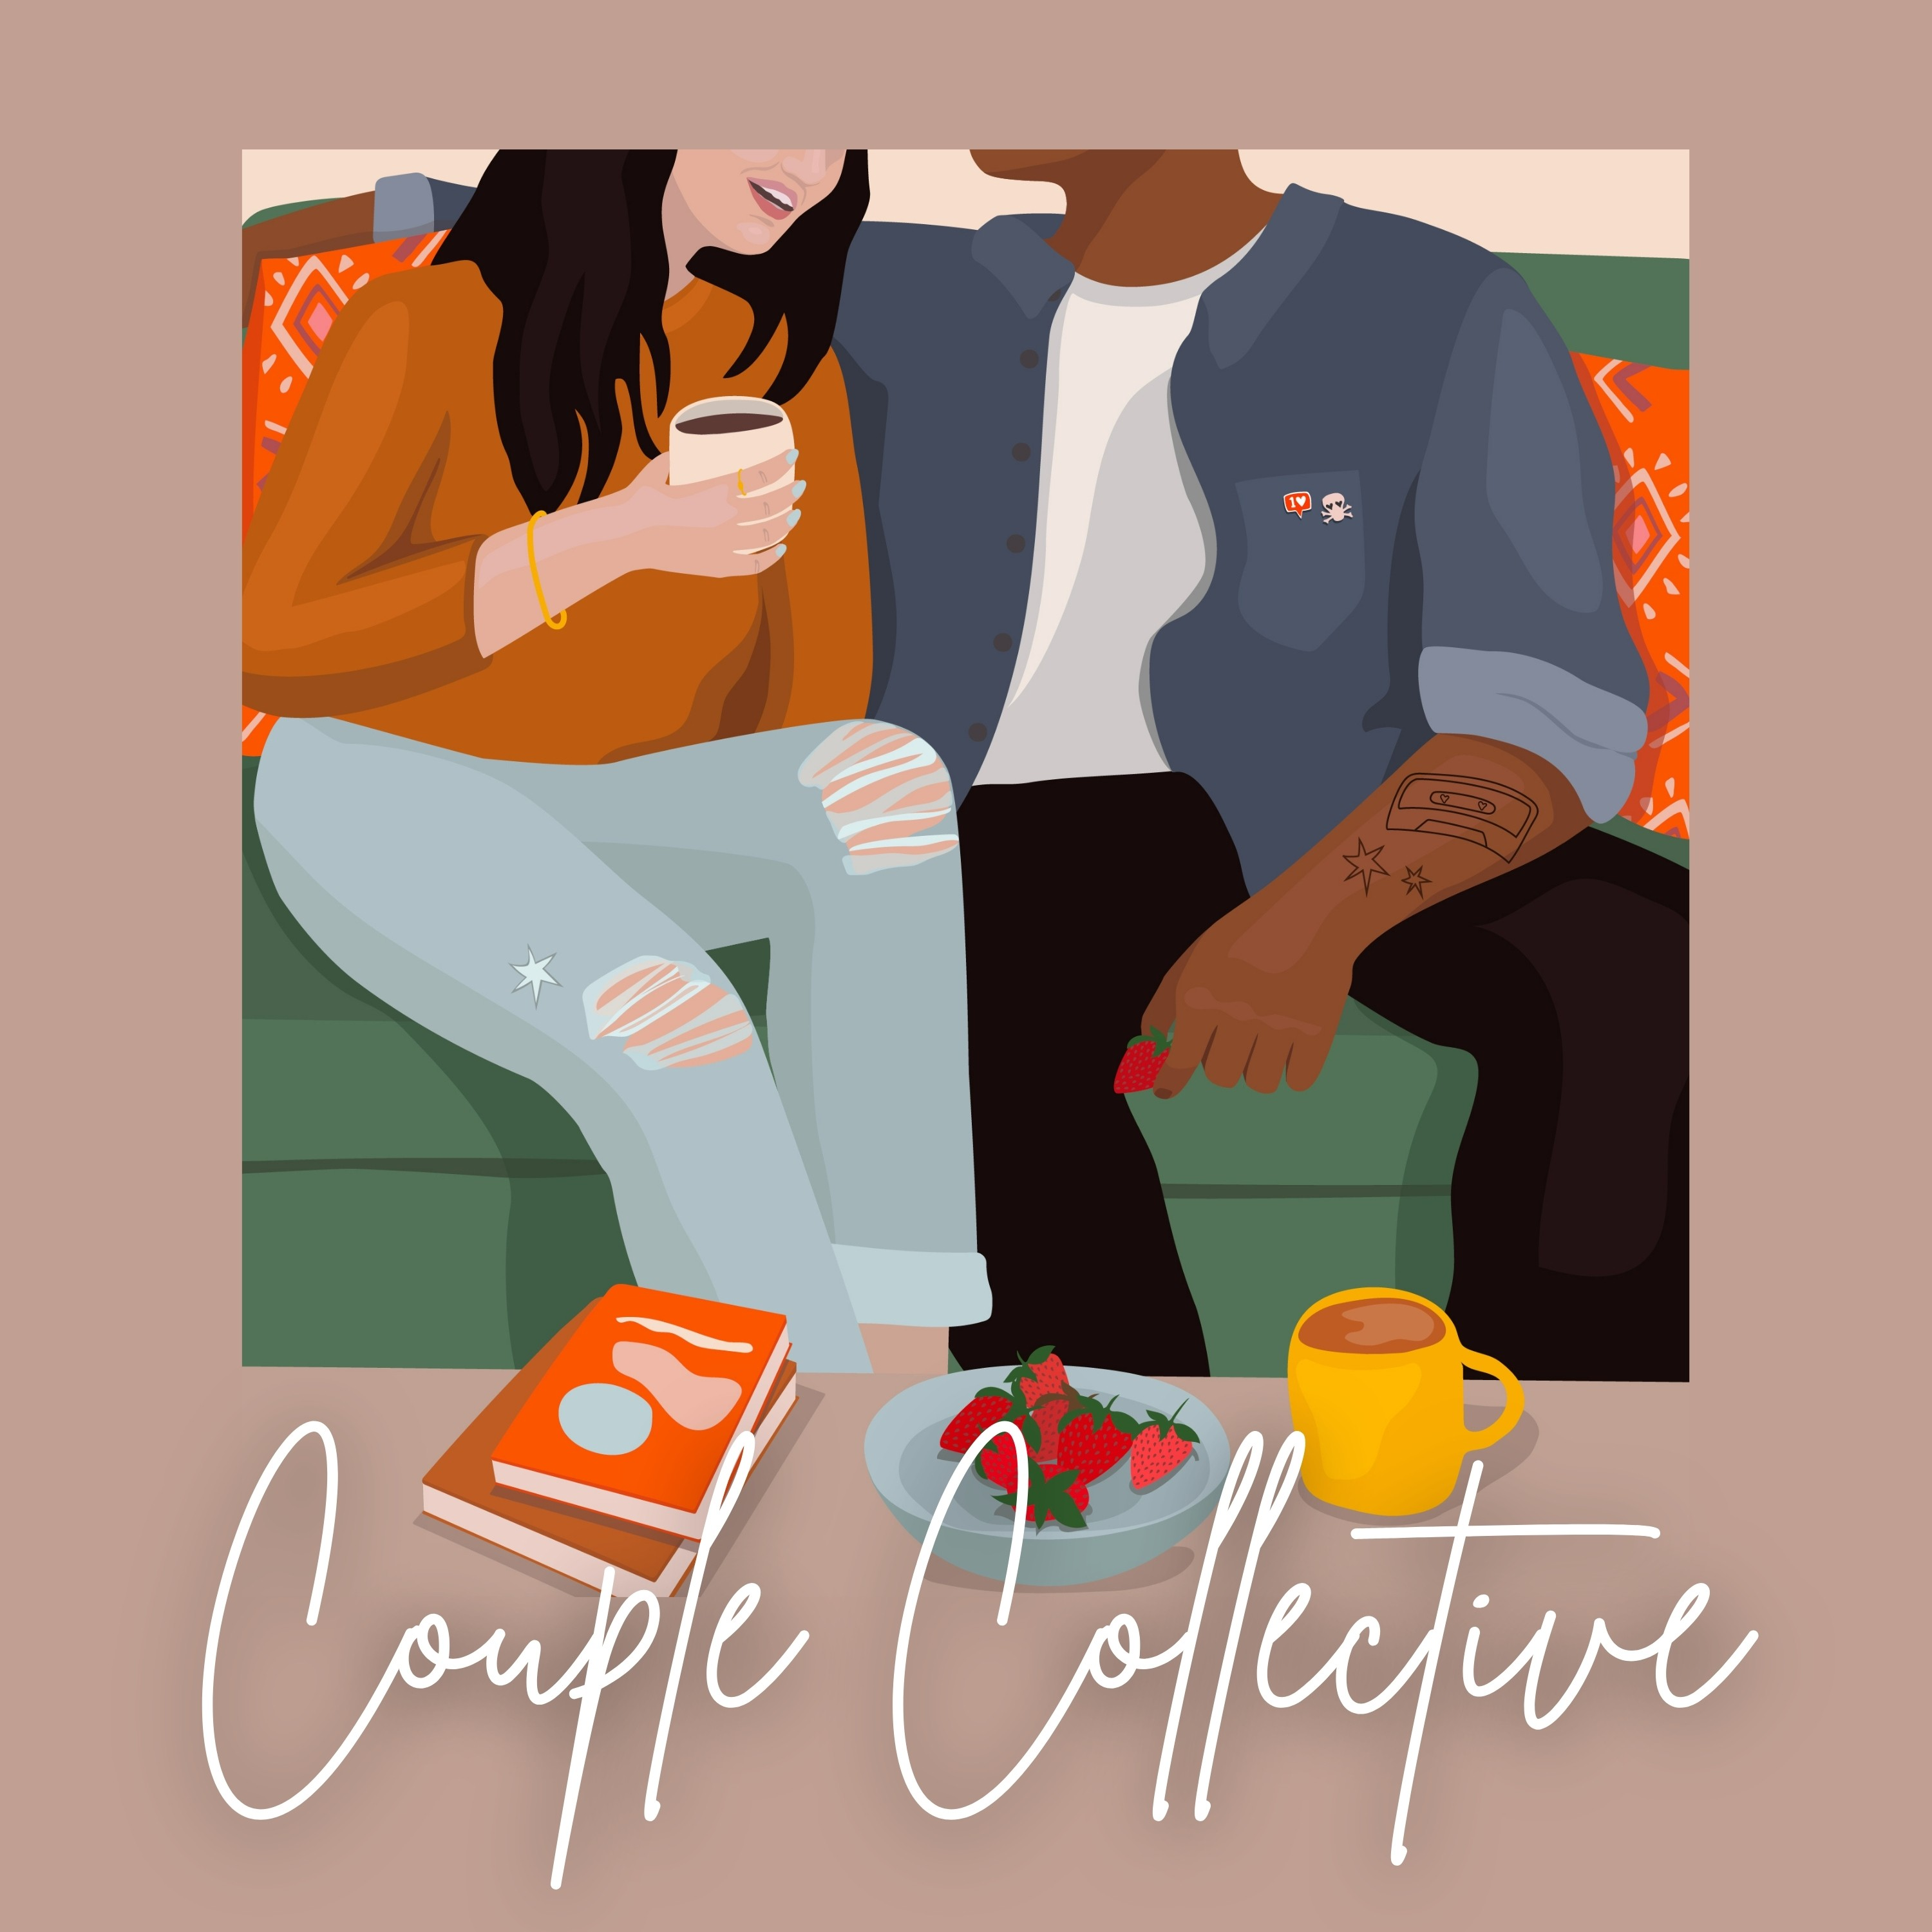 Show artwork for Couple Collective